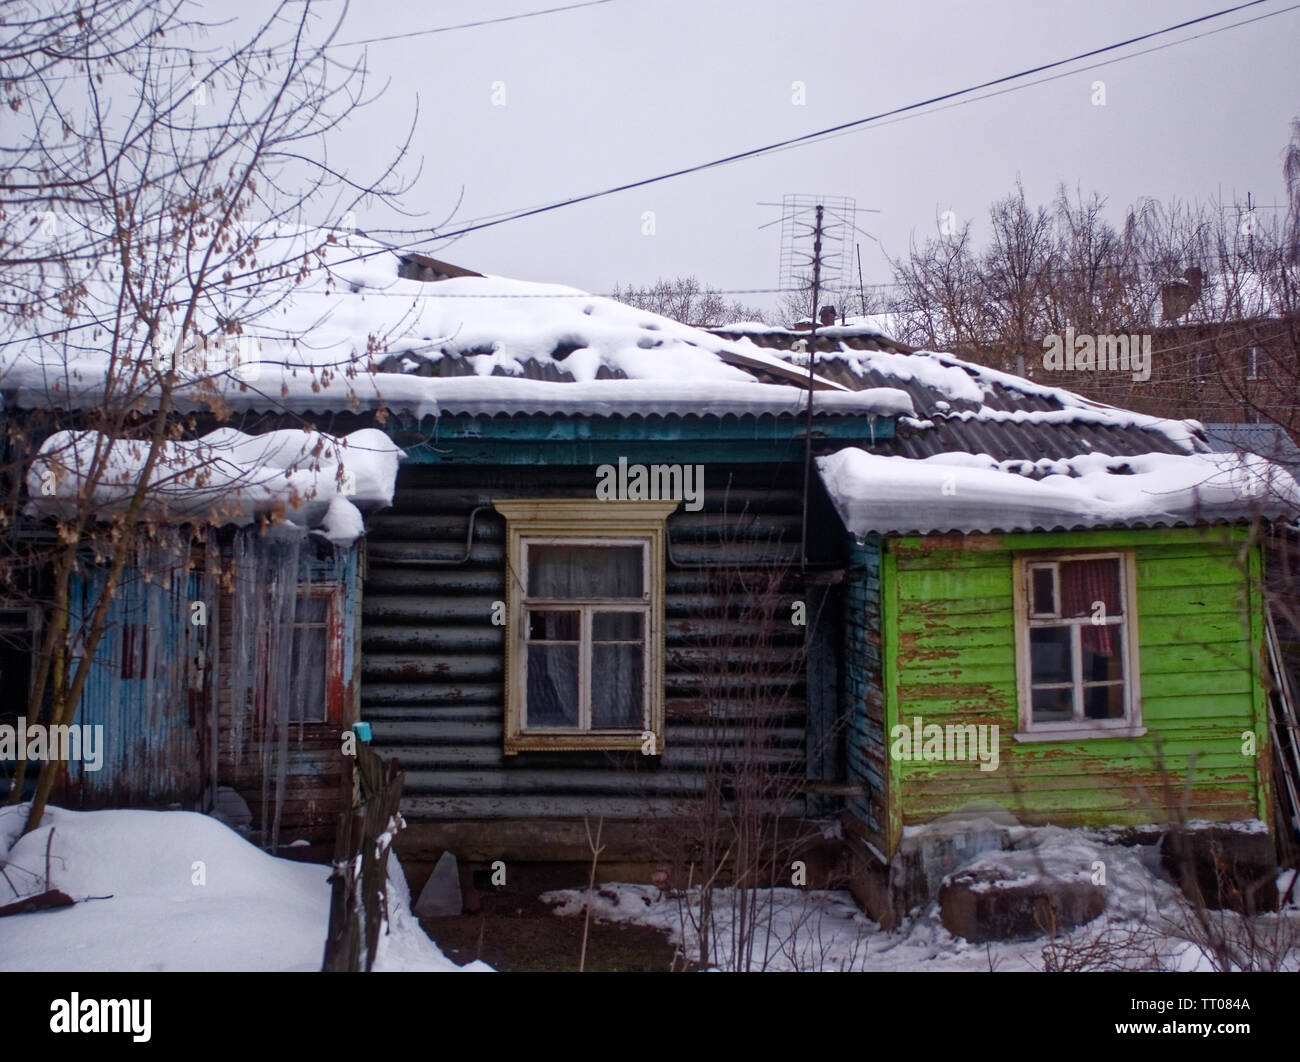 large icicles hanging from the roof of a wooden house, Russia - Stock Image